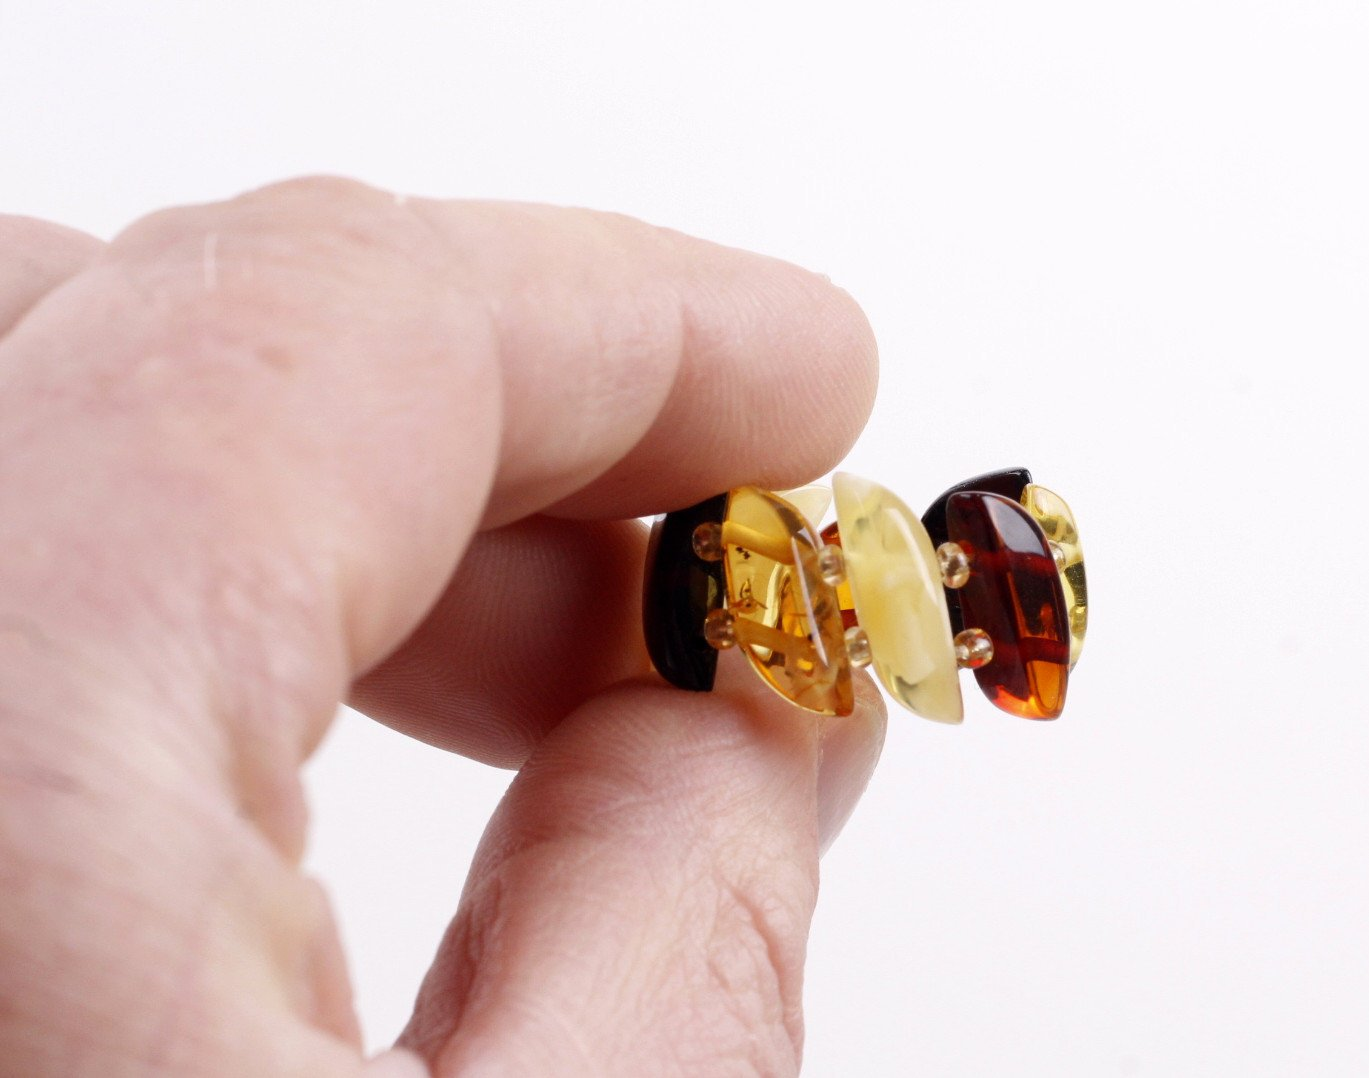 Elastic Ring, Baltic Amber Ring, Natural Amber Ring, Gemstone Ring, Expandable,Stretch Flexible Ring, Thumb Ring, Ring for Pain Relief - Amber SOS